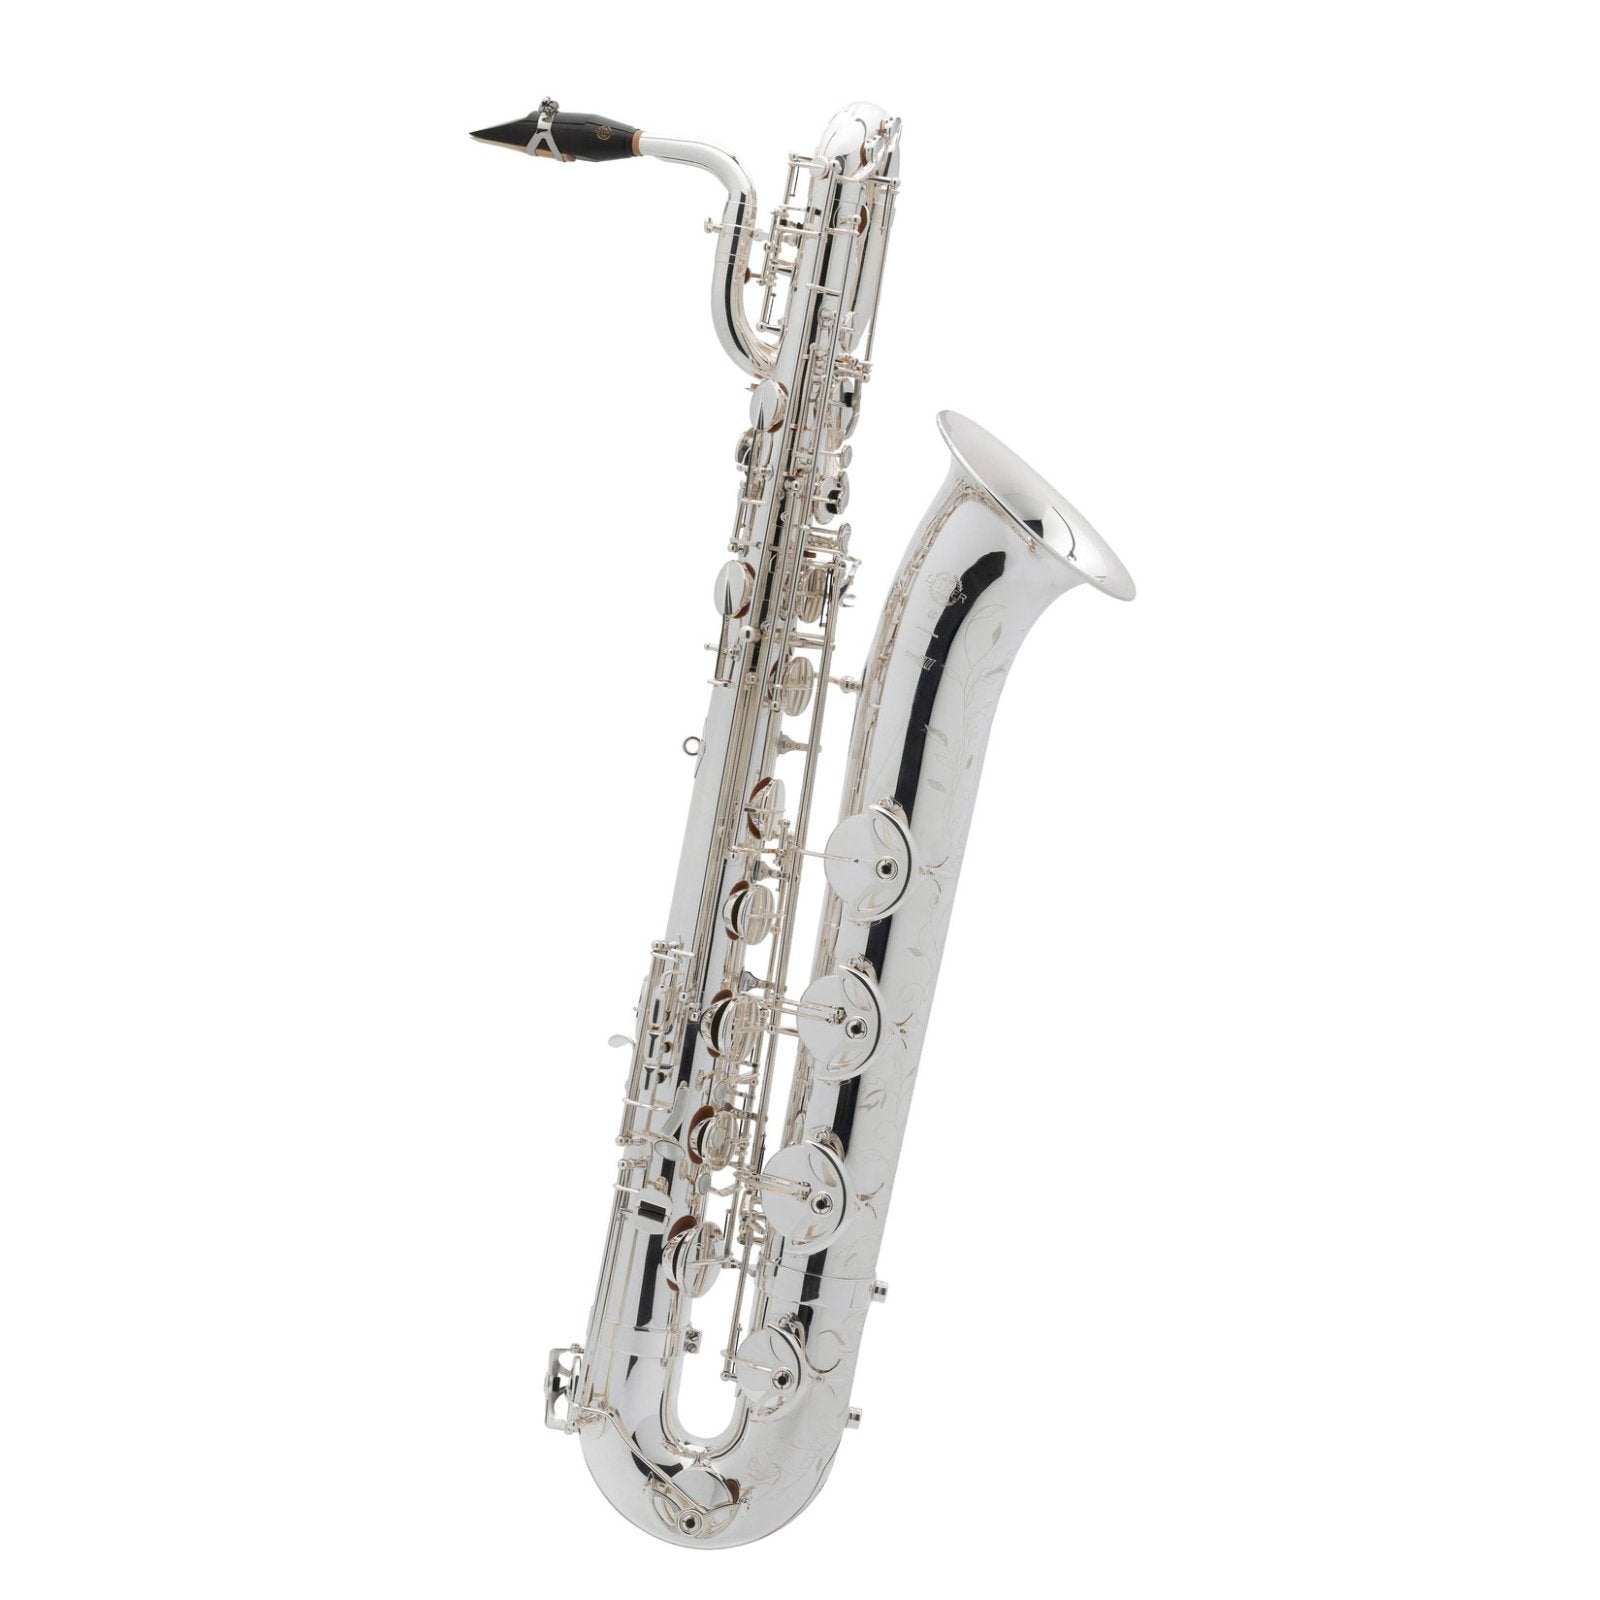 Selmer Paris - Super Action 80 Series II Jubilee Baritone Saxophone (Silver Plated)